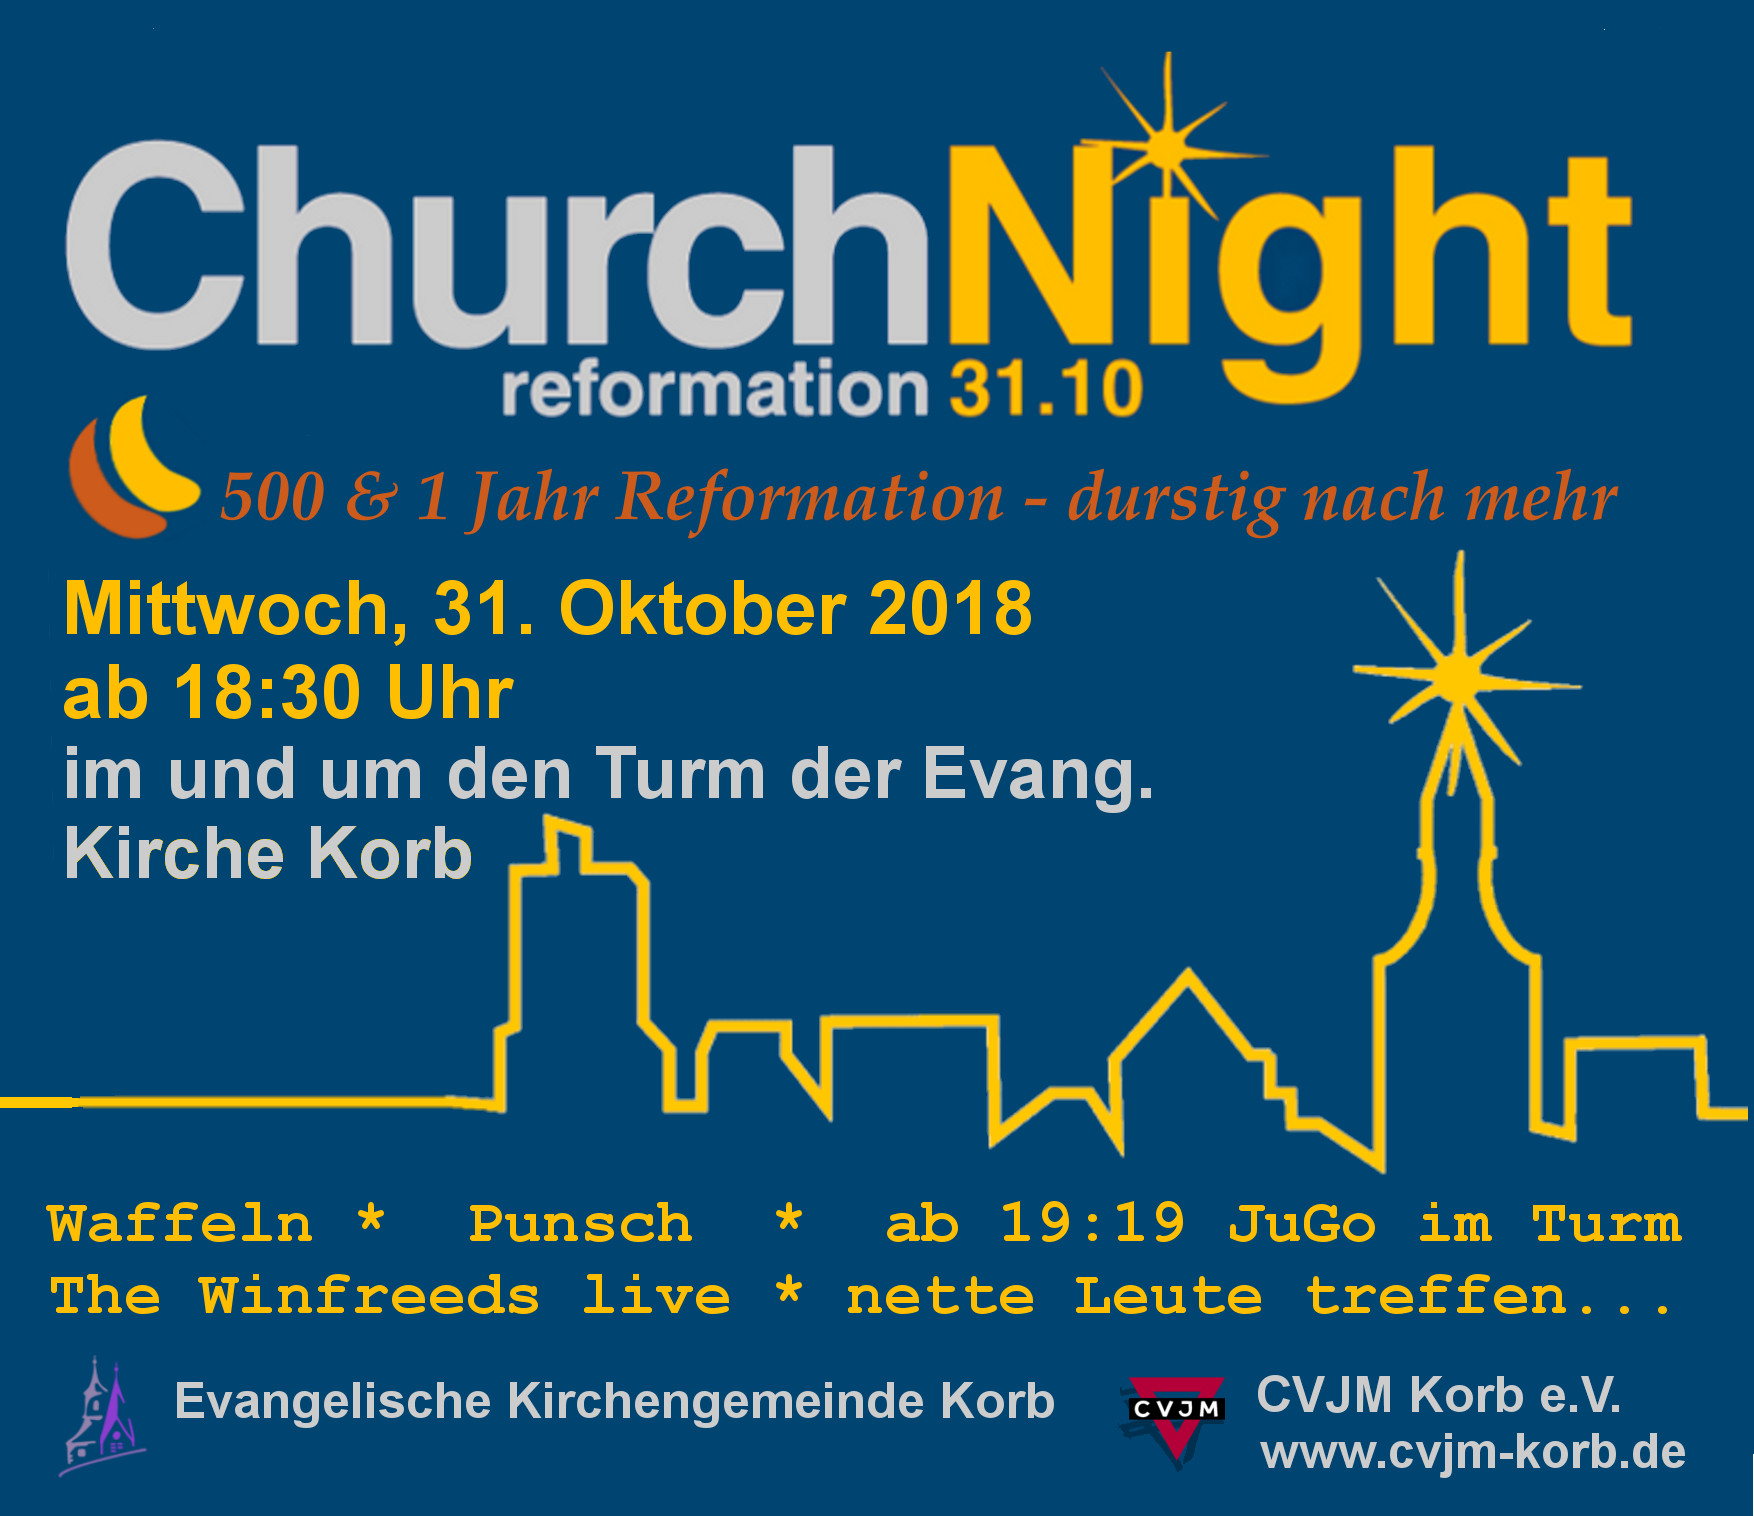 ChurchNight 2018